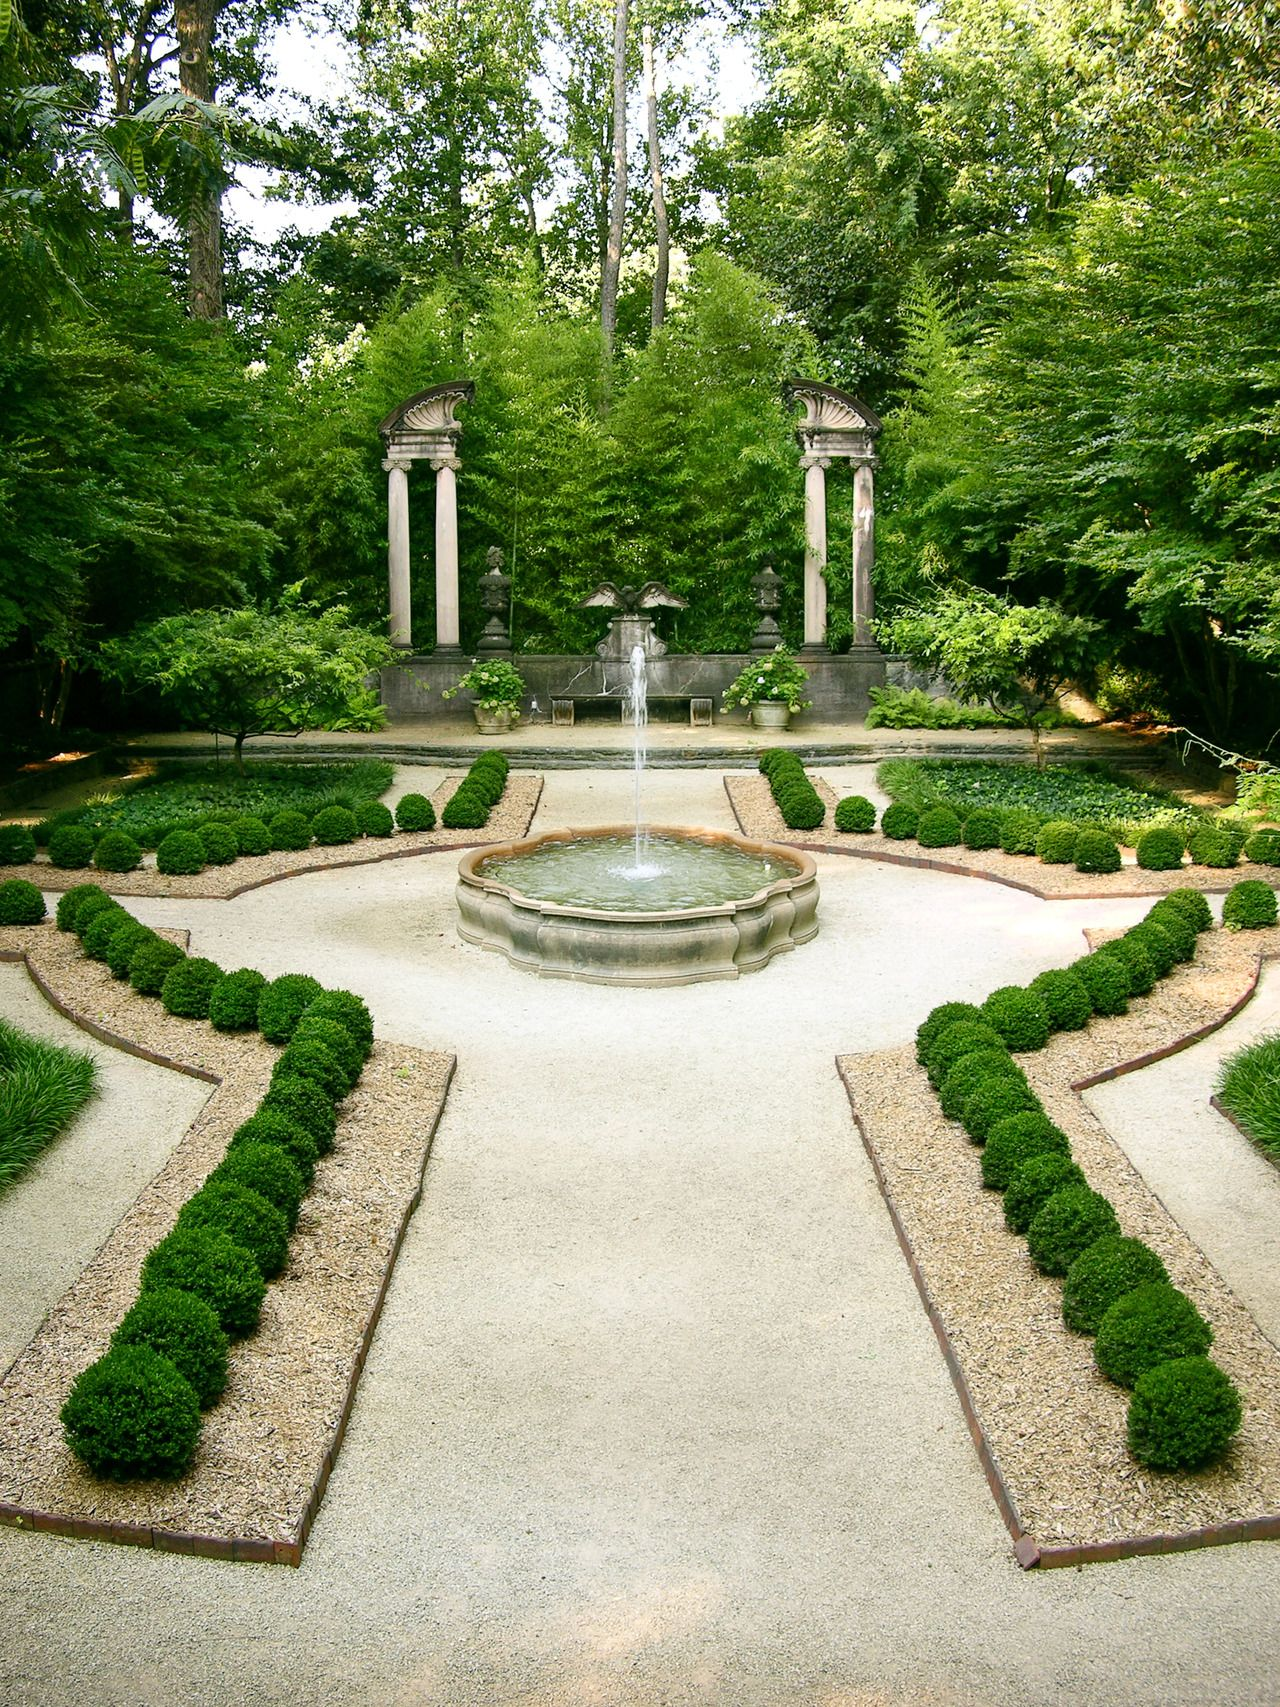 Boxwood Garden At Atlanta Swan House Via Atlanta History Center